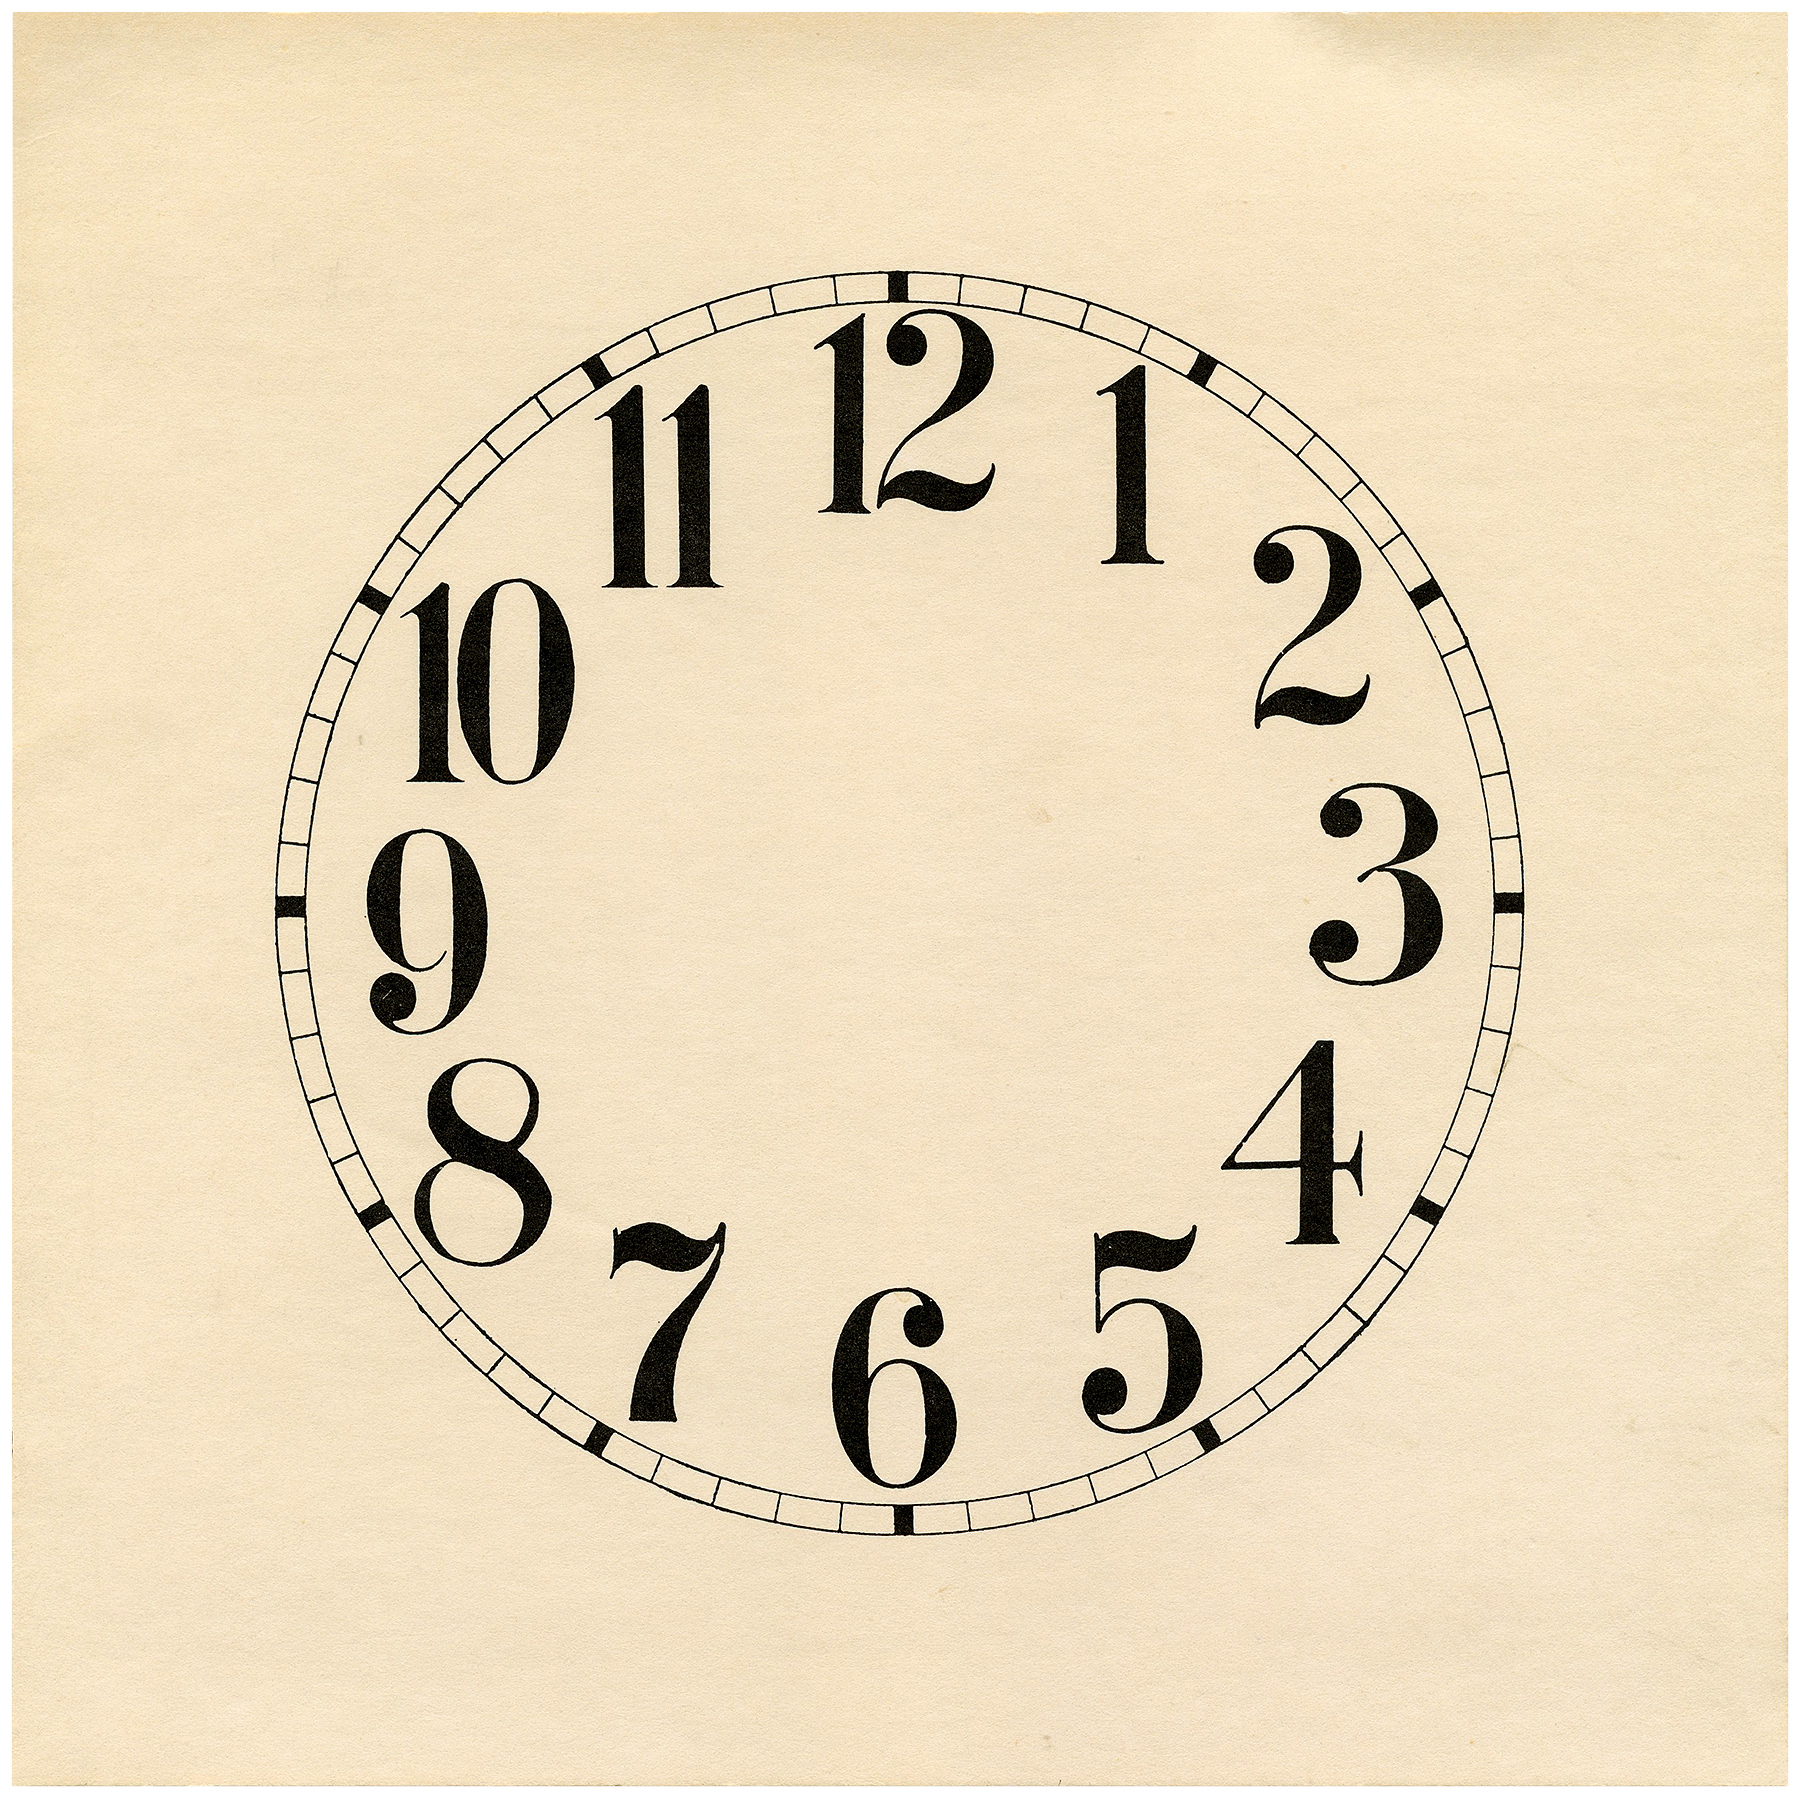 Make Your Own Clock Face Template